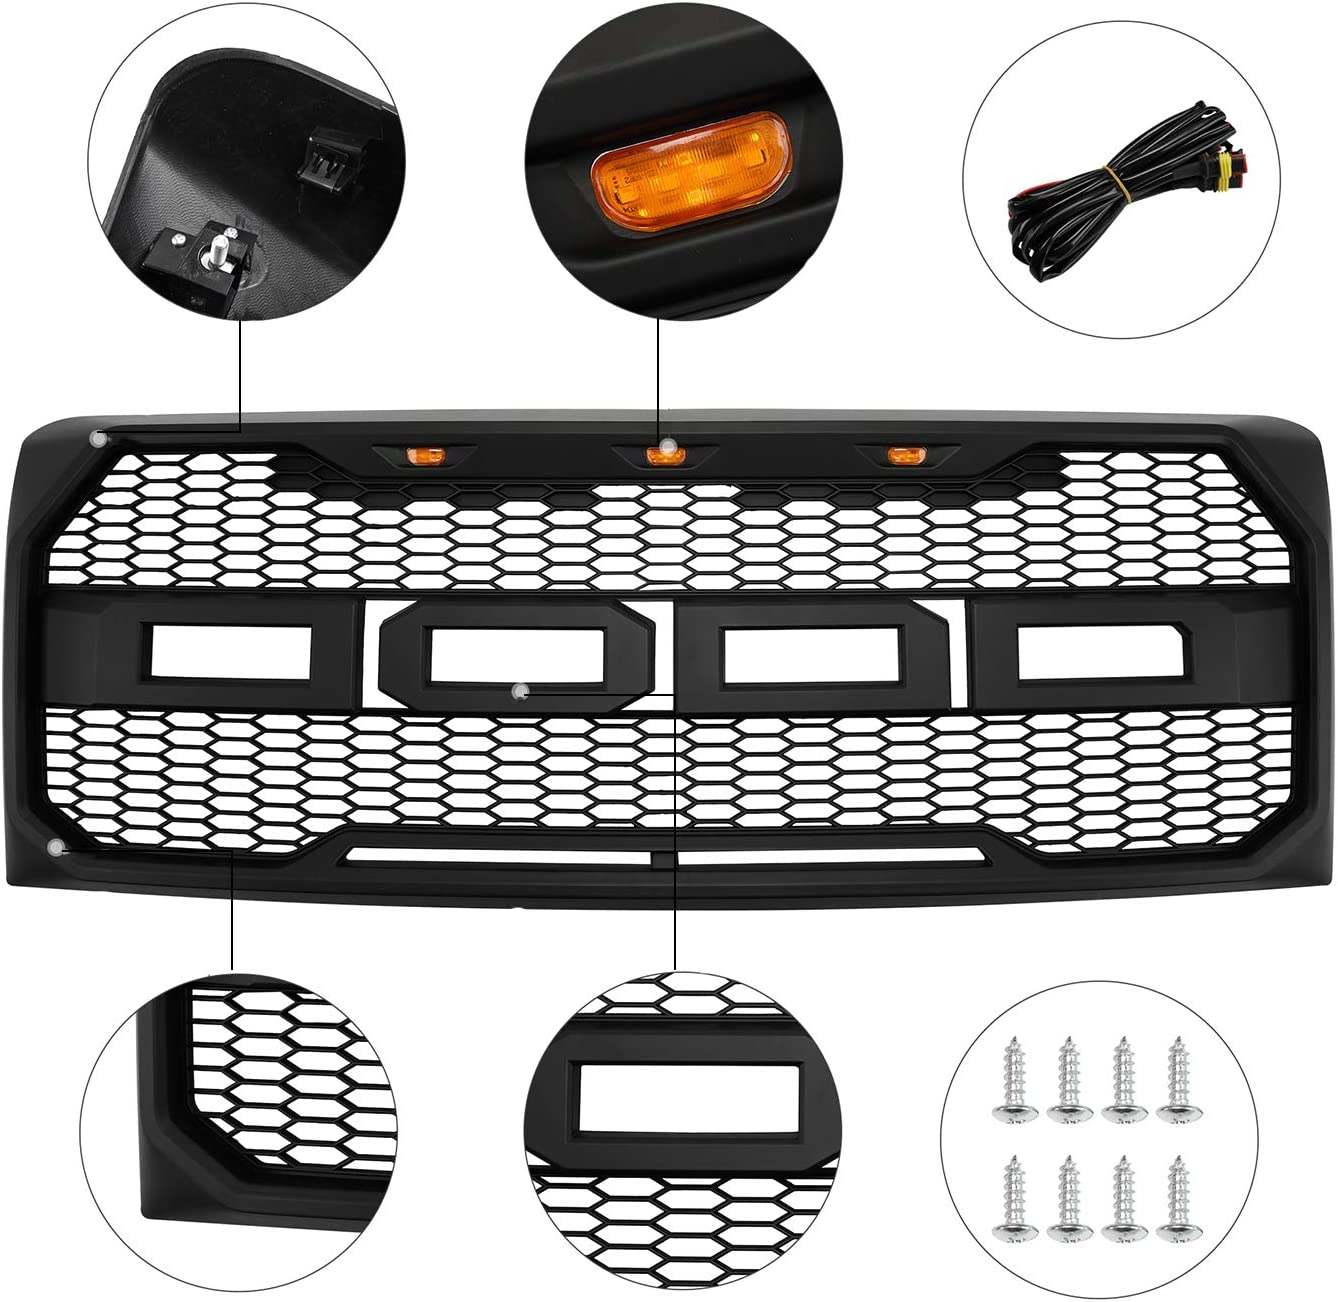 SEVENS Front Raptor Style Grill for 2009-2014 Ford F150 Front Grille with Amber Lights and Letters Matte Black